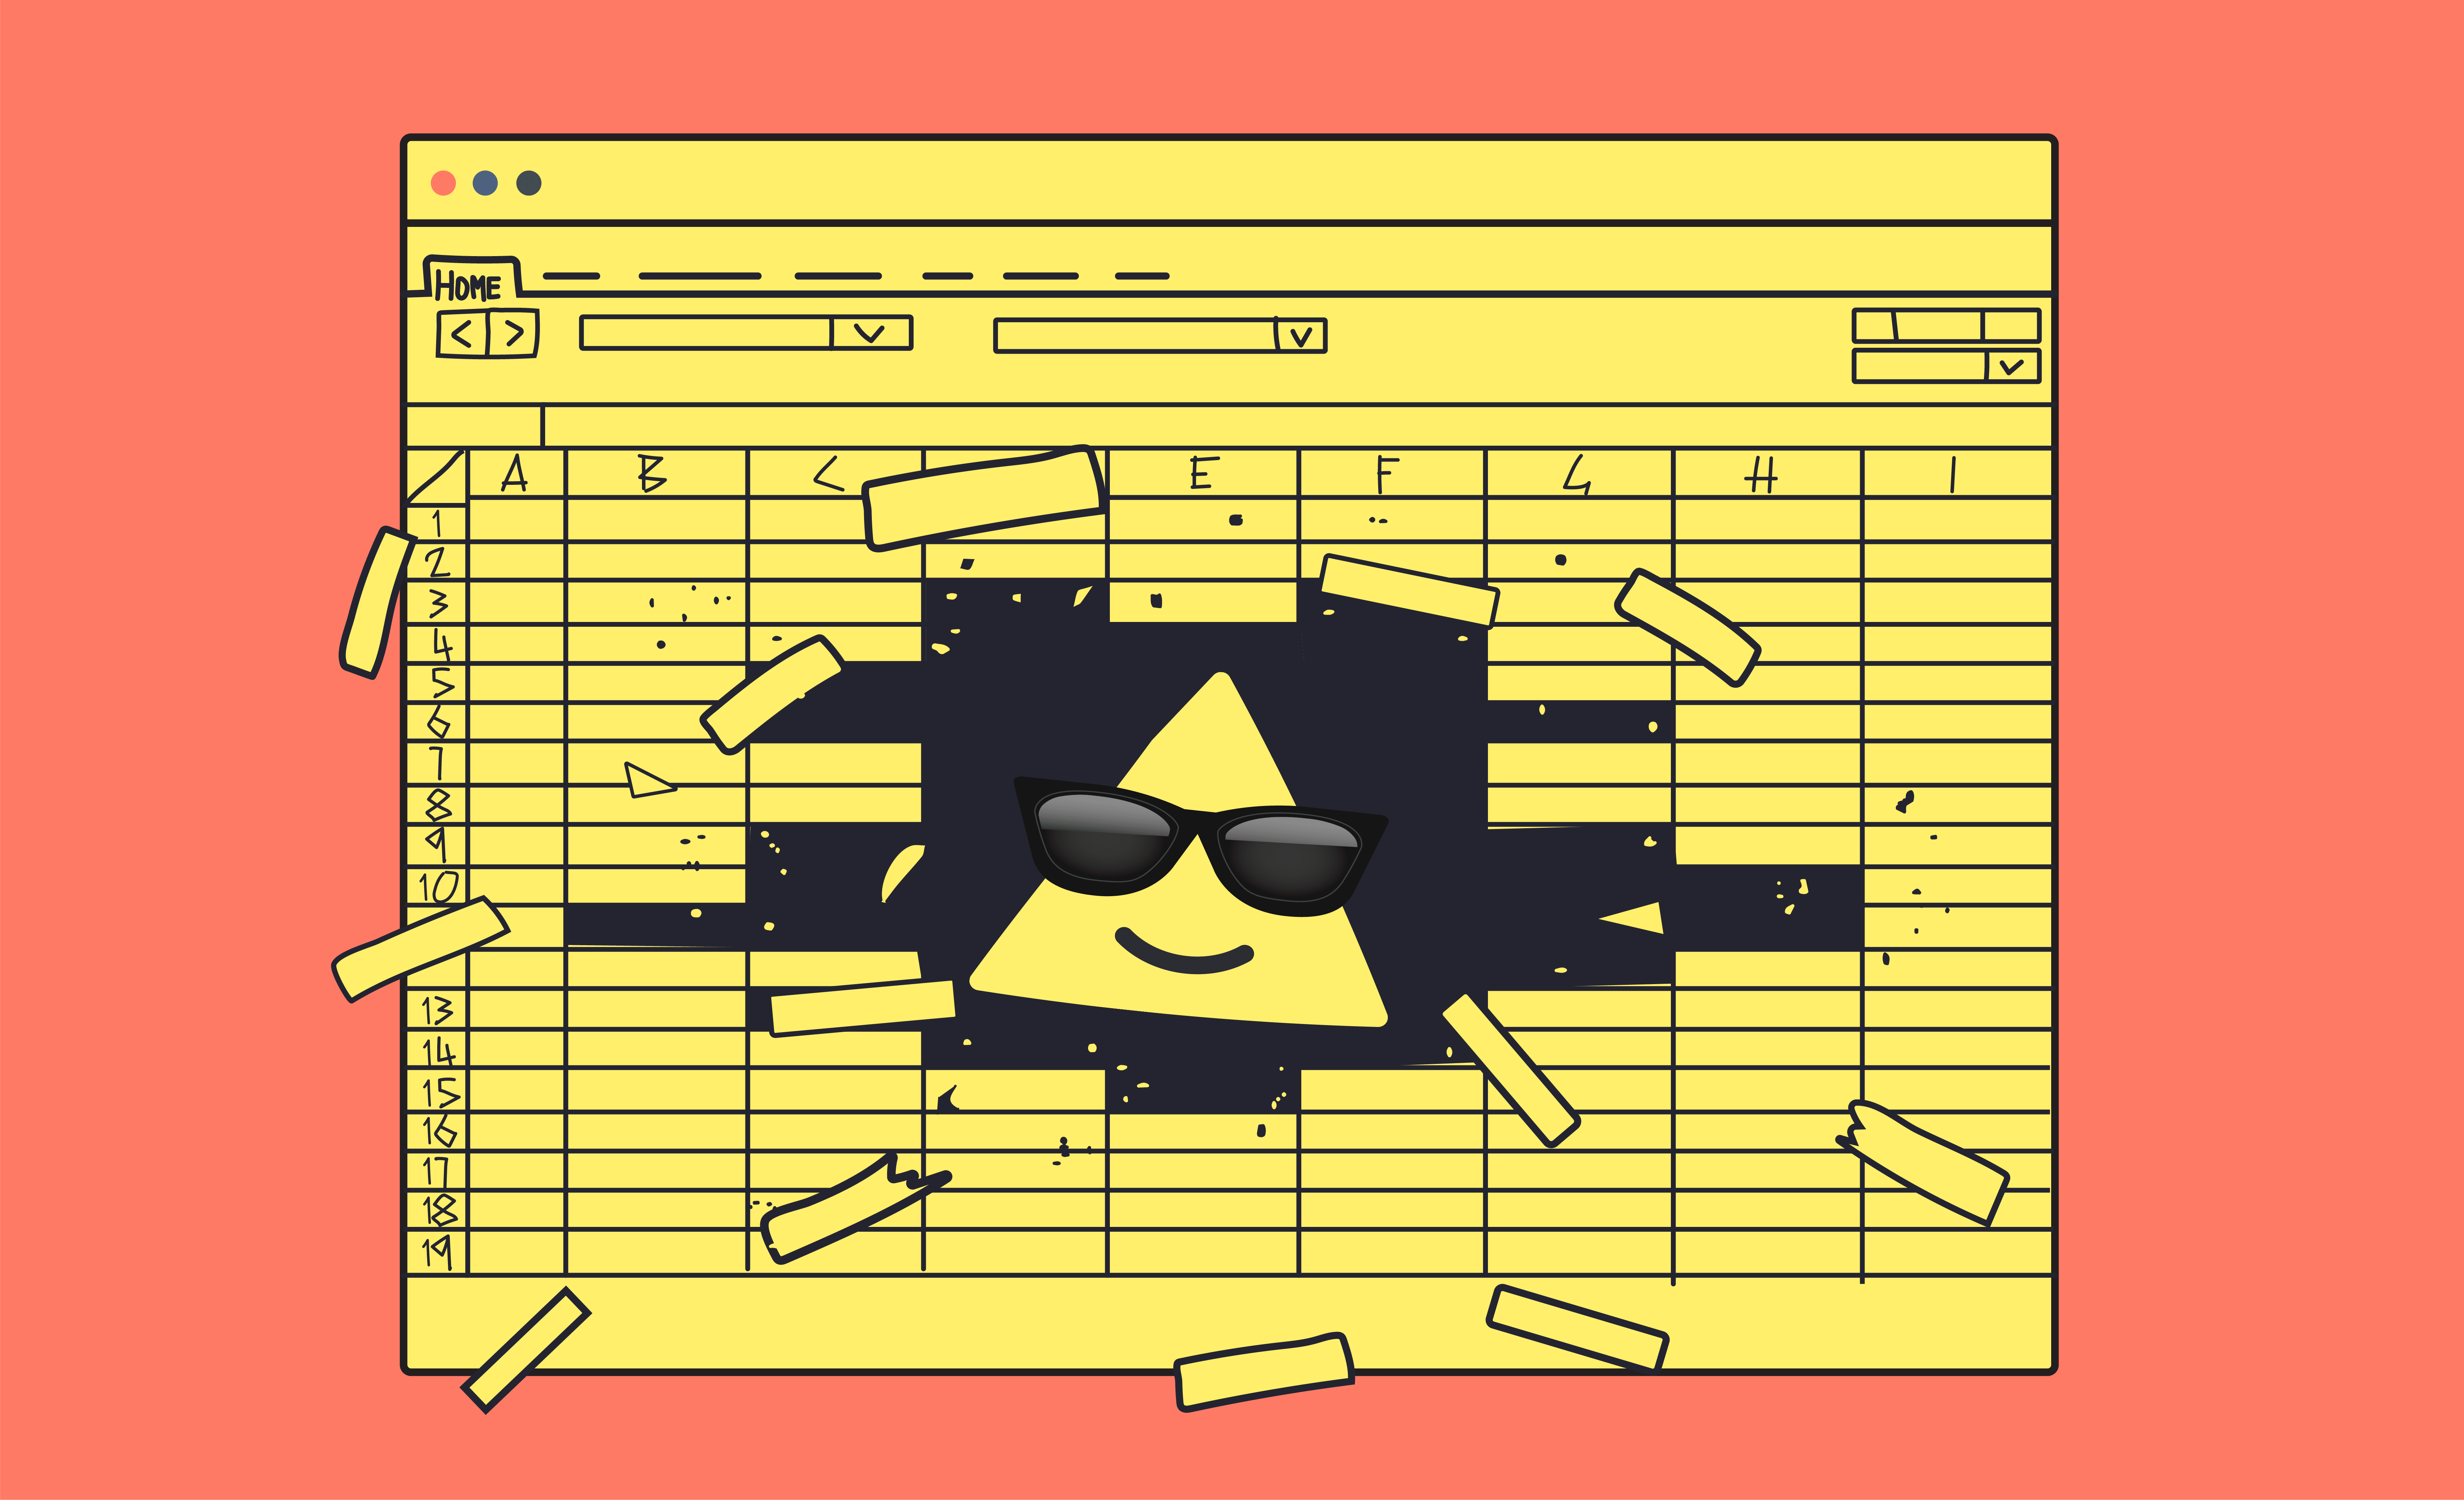 Up mascot wearing sunglasses busting through a spreadsheet